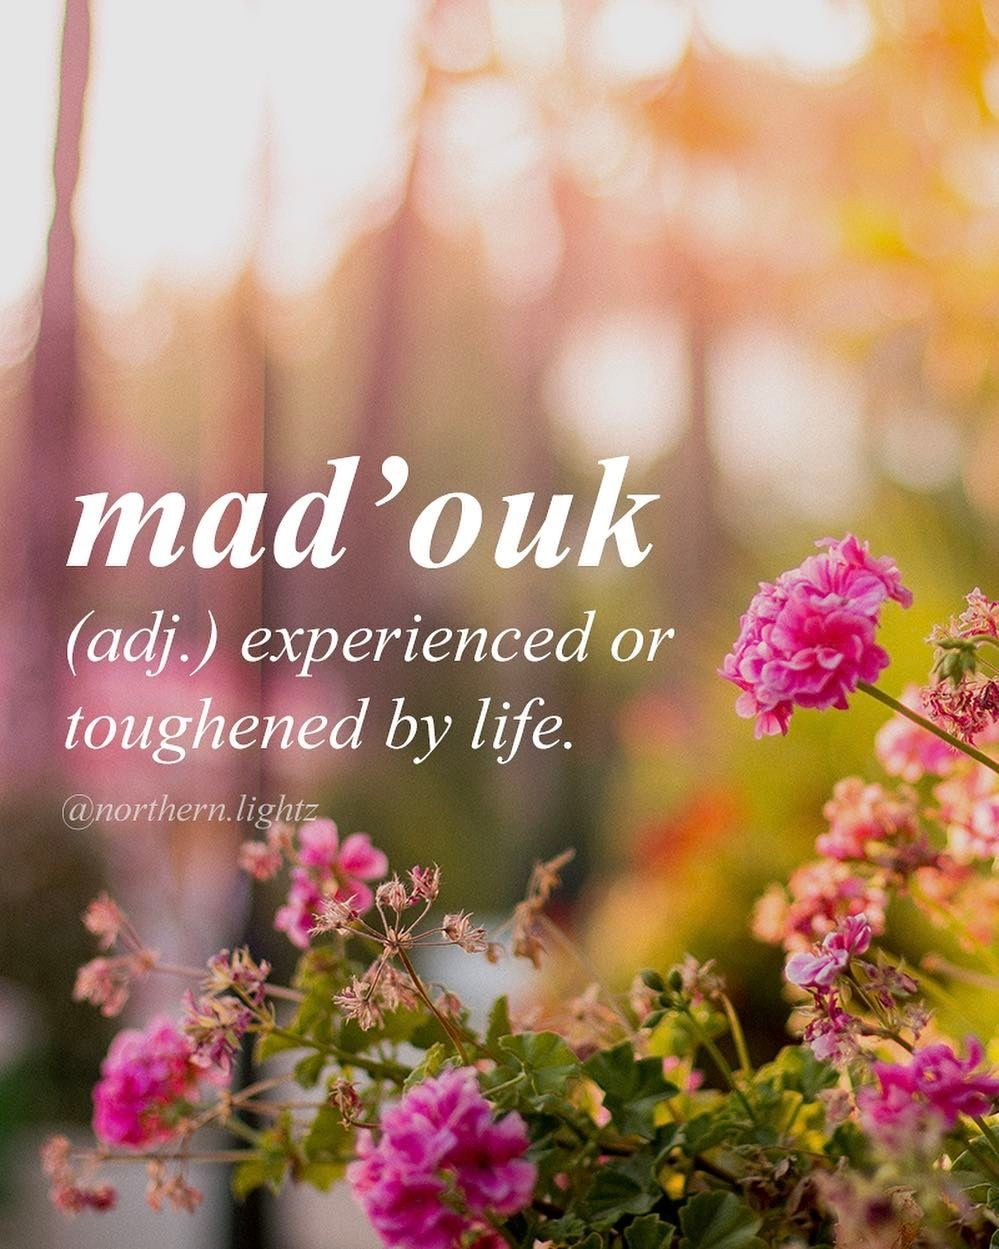 Mad'ouk- | A | Words, Unusual words, Arabic words